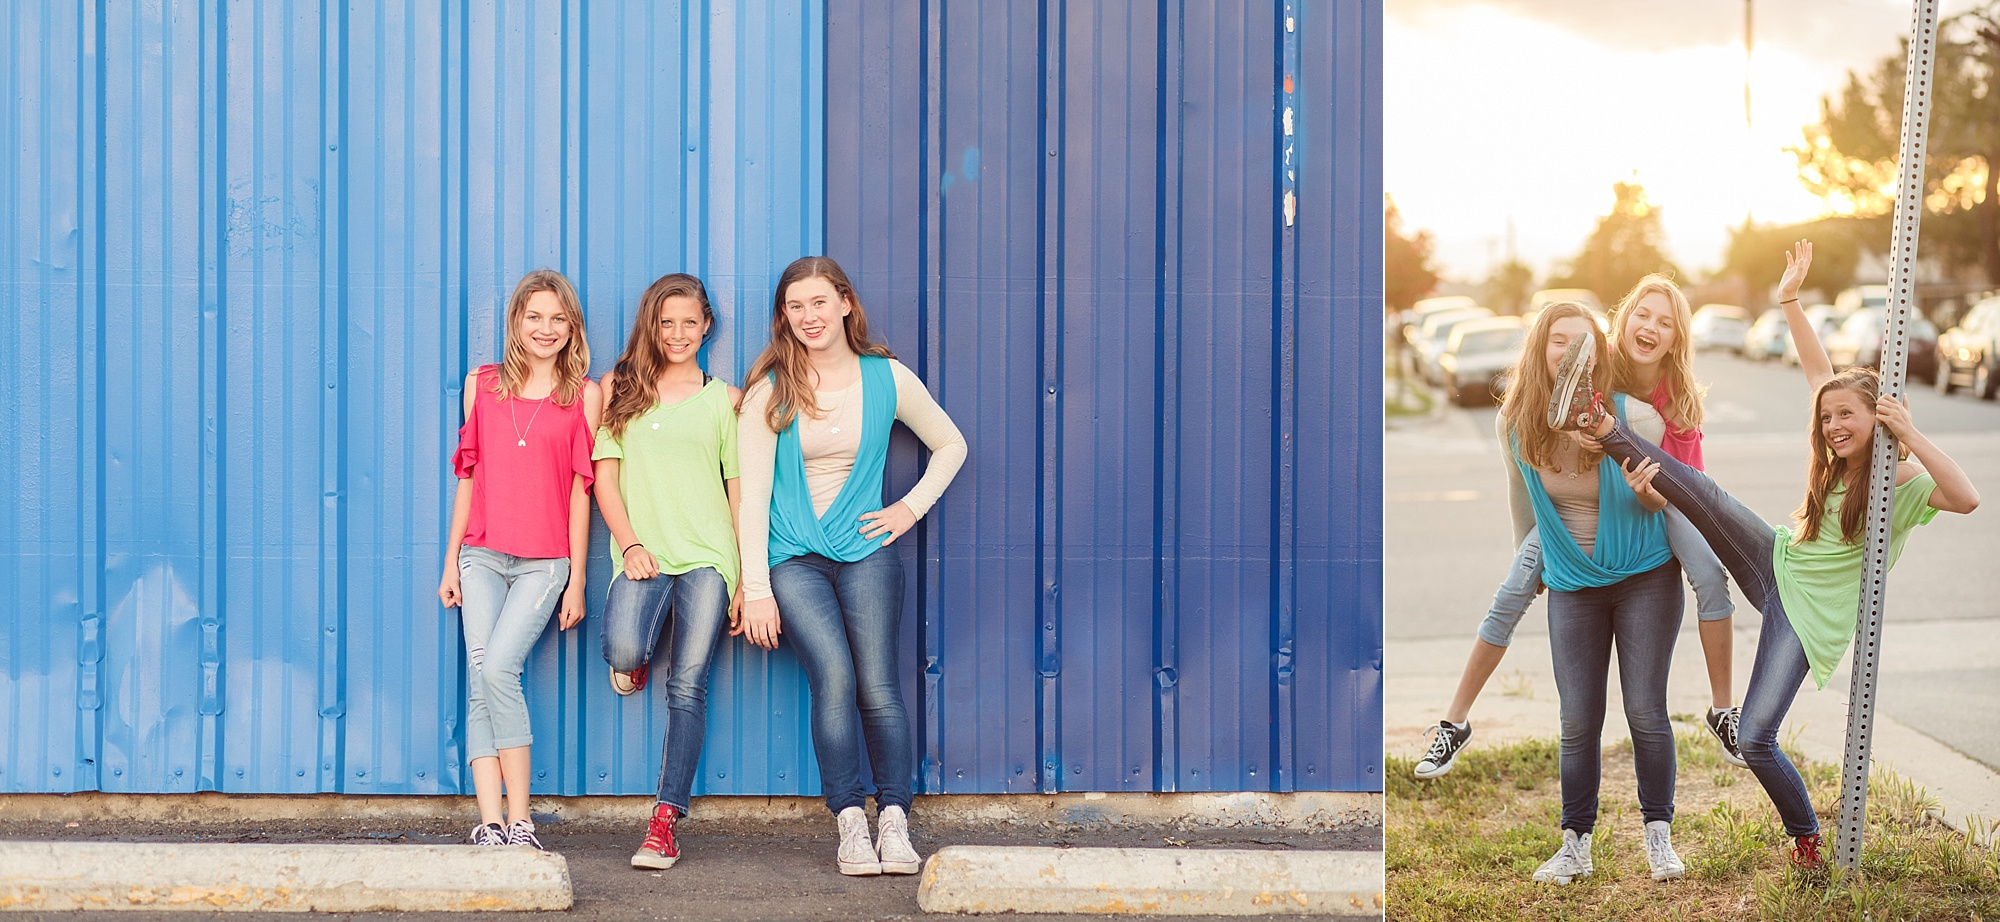 Tween Photography | San Diego Child Photographer